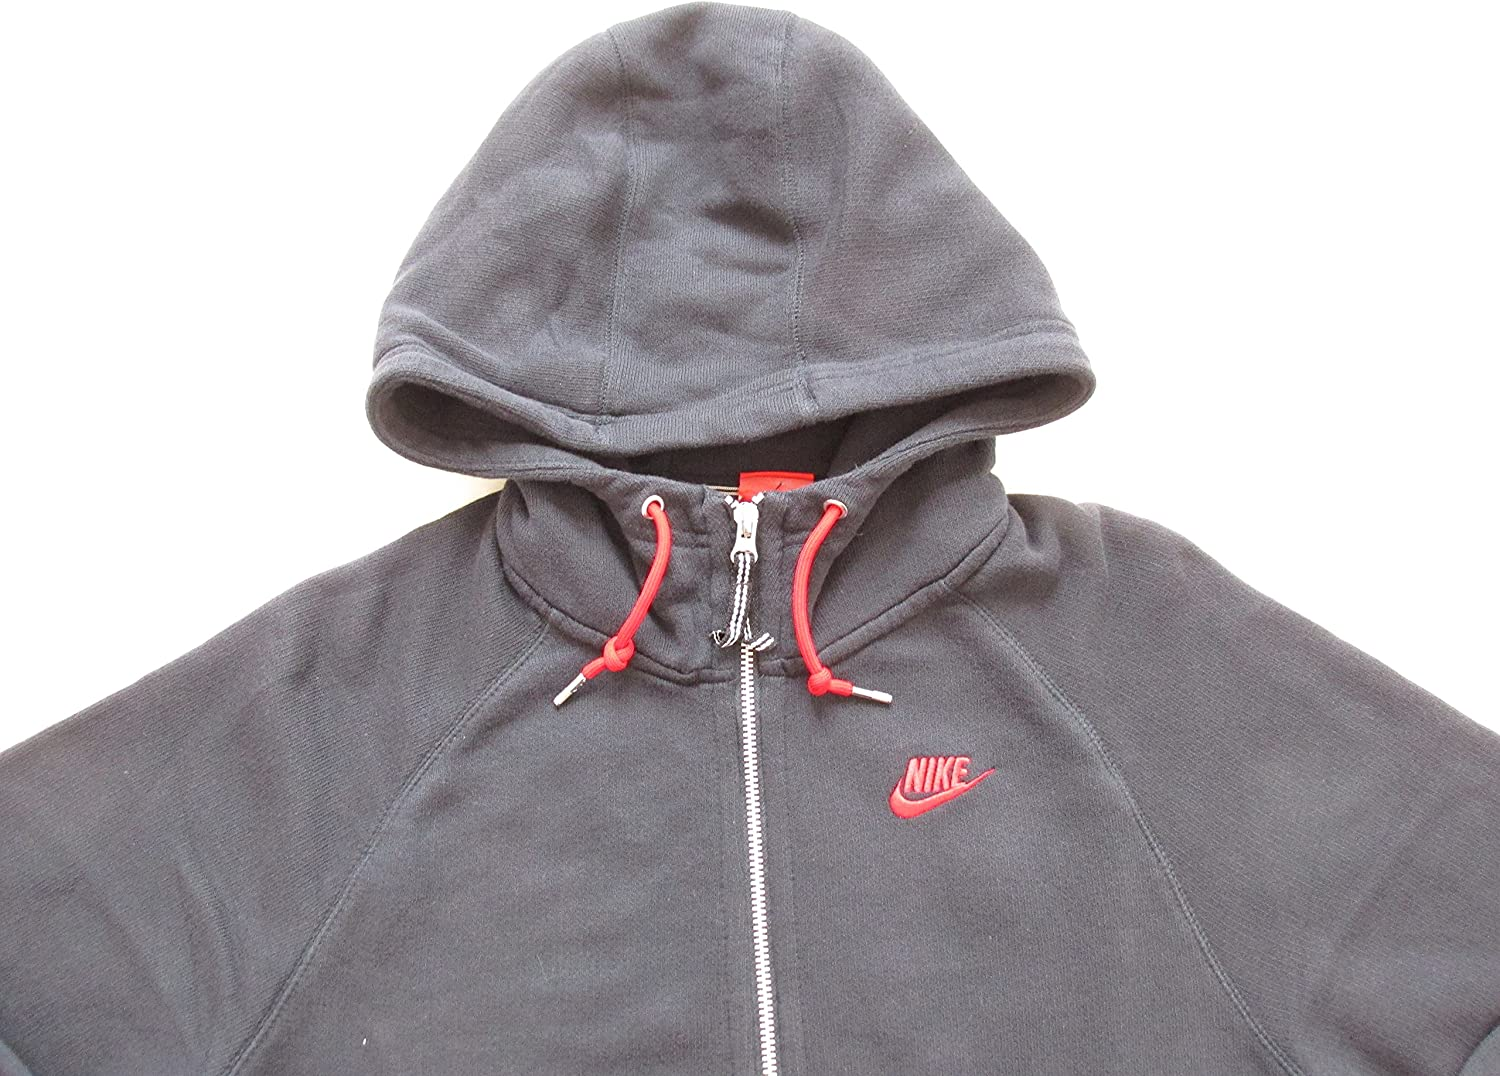 Nike Sportswear NSW England Football Hoodie 598691 417 Full Zip Cardigan Jacket